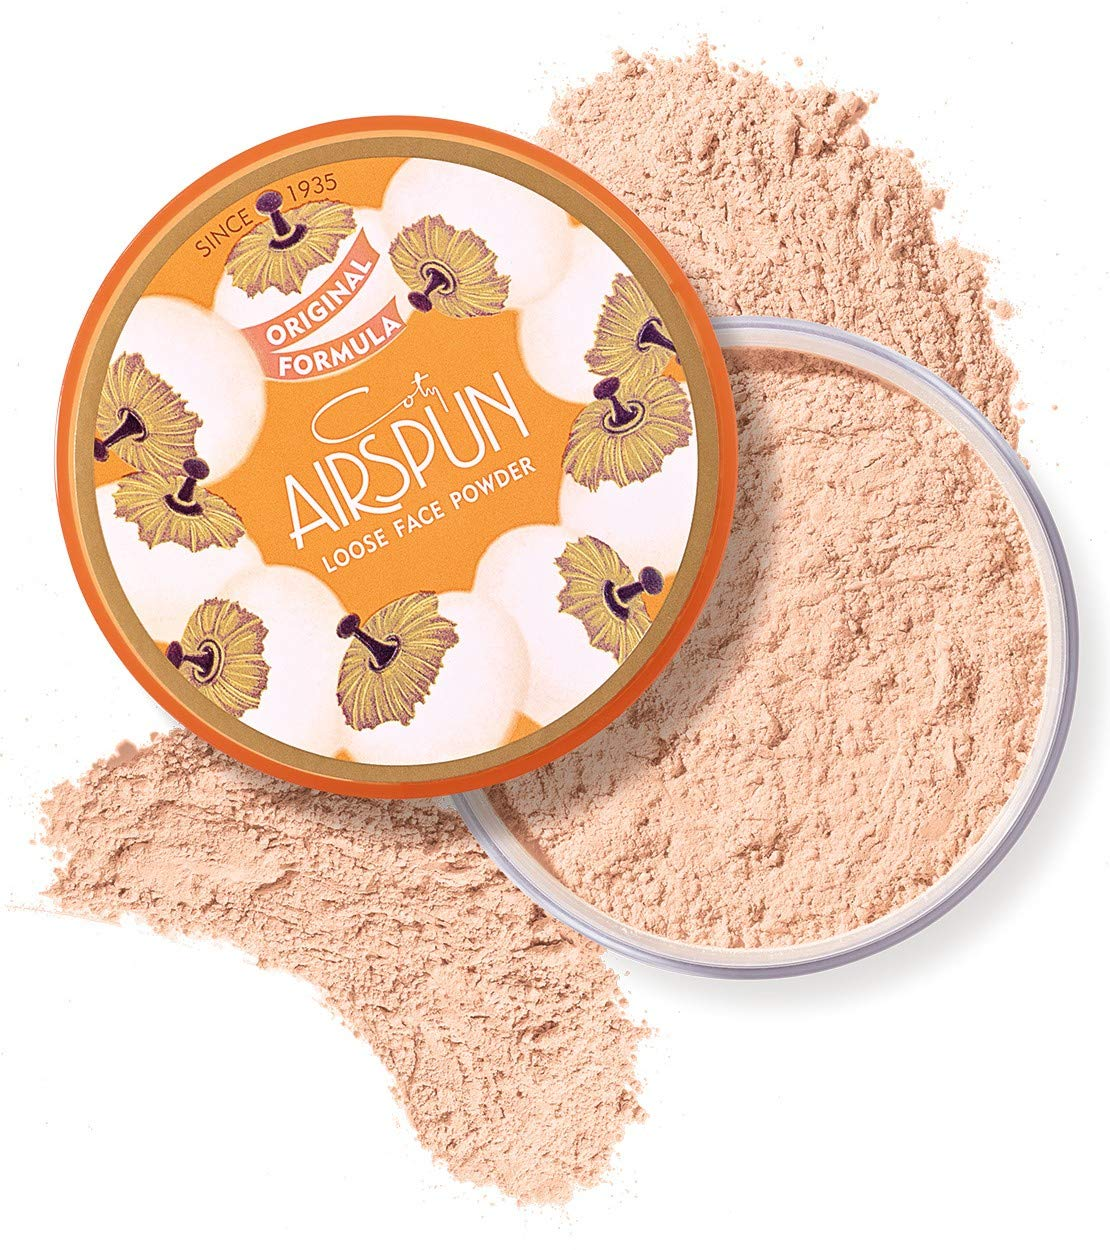 Coty Airspun Loose Face Powder 2.3 Ounce Honey Beige Light Peach Tone Loose Face Powder, for Setting or Foundation, Lightweight, Long Lasting, Pack of 1